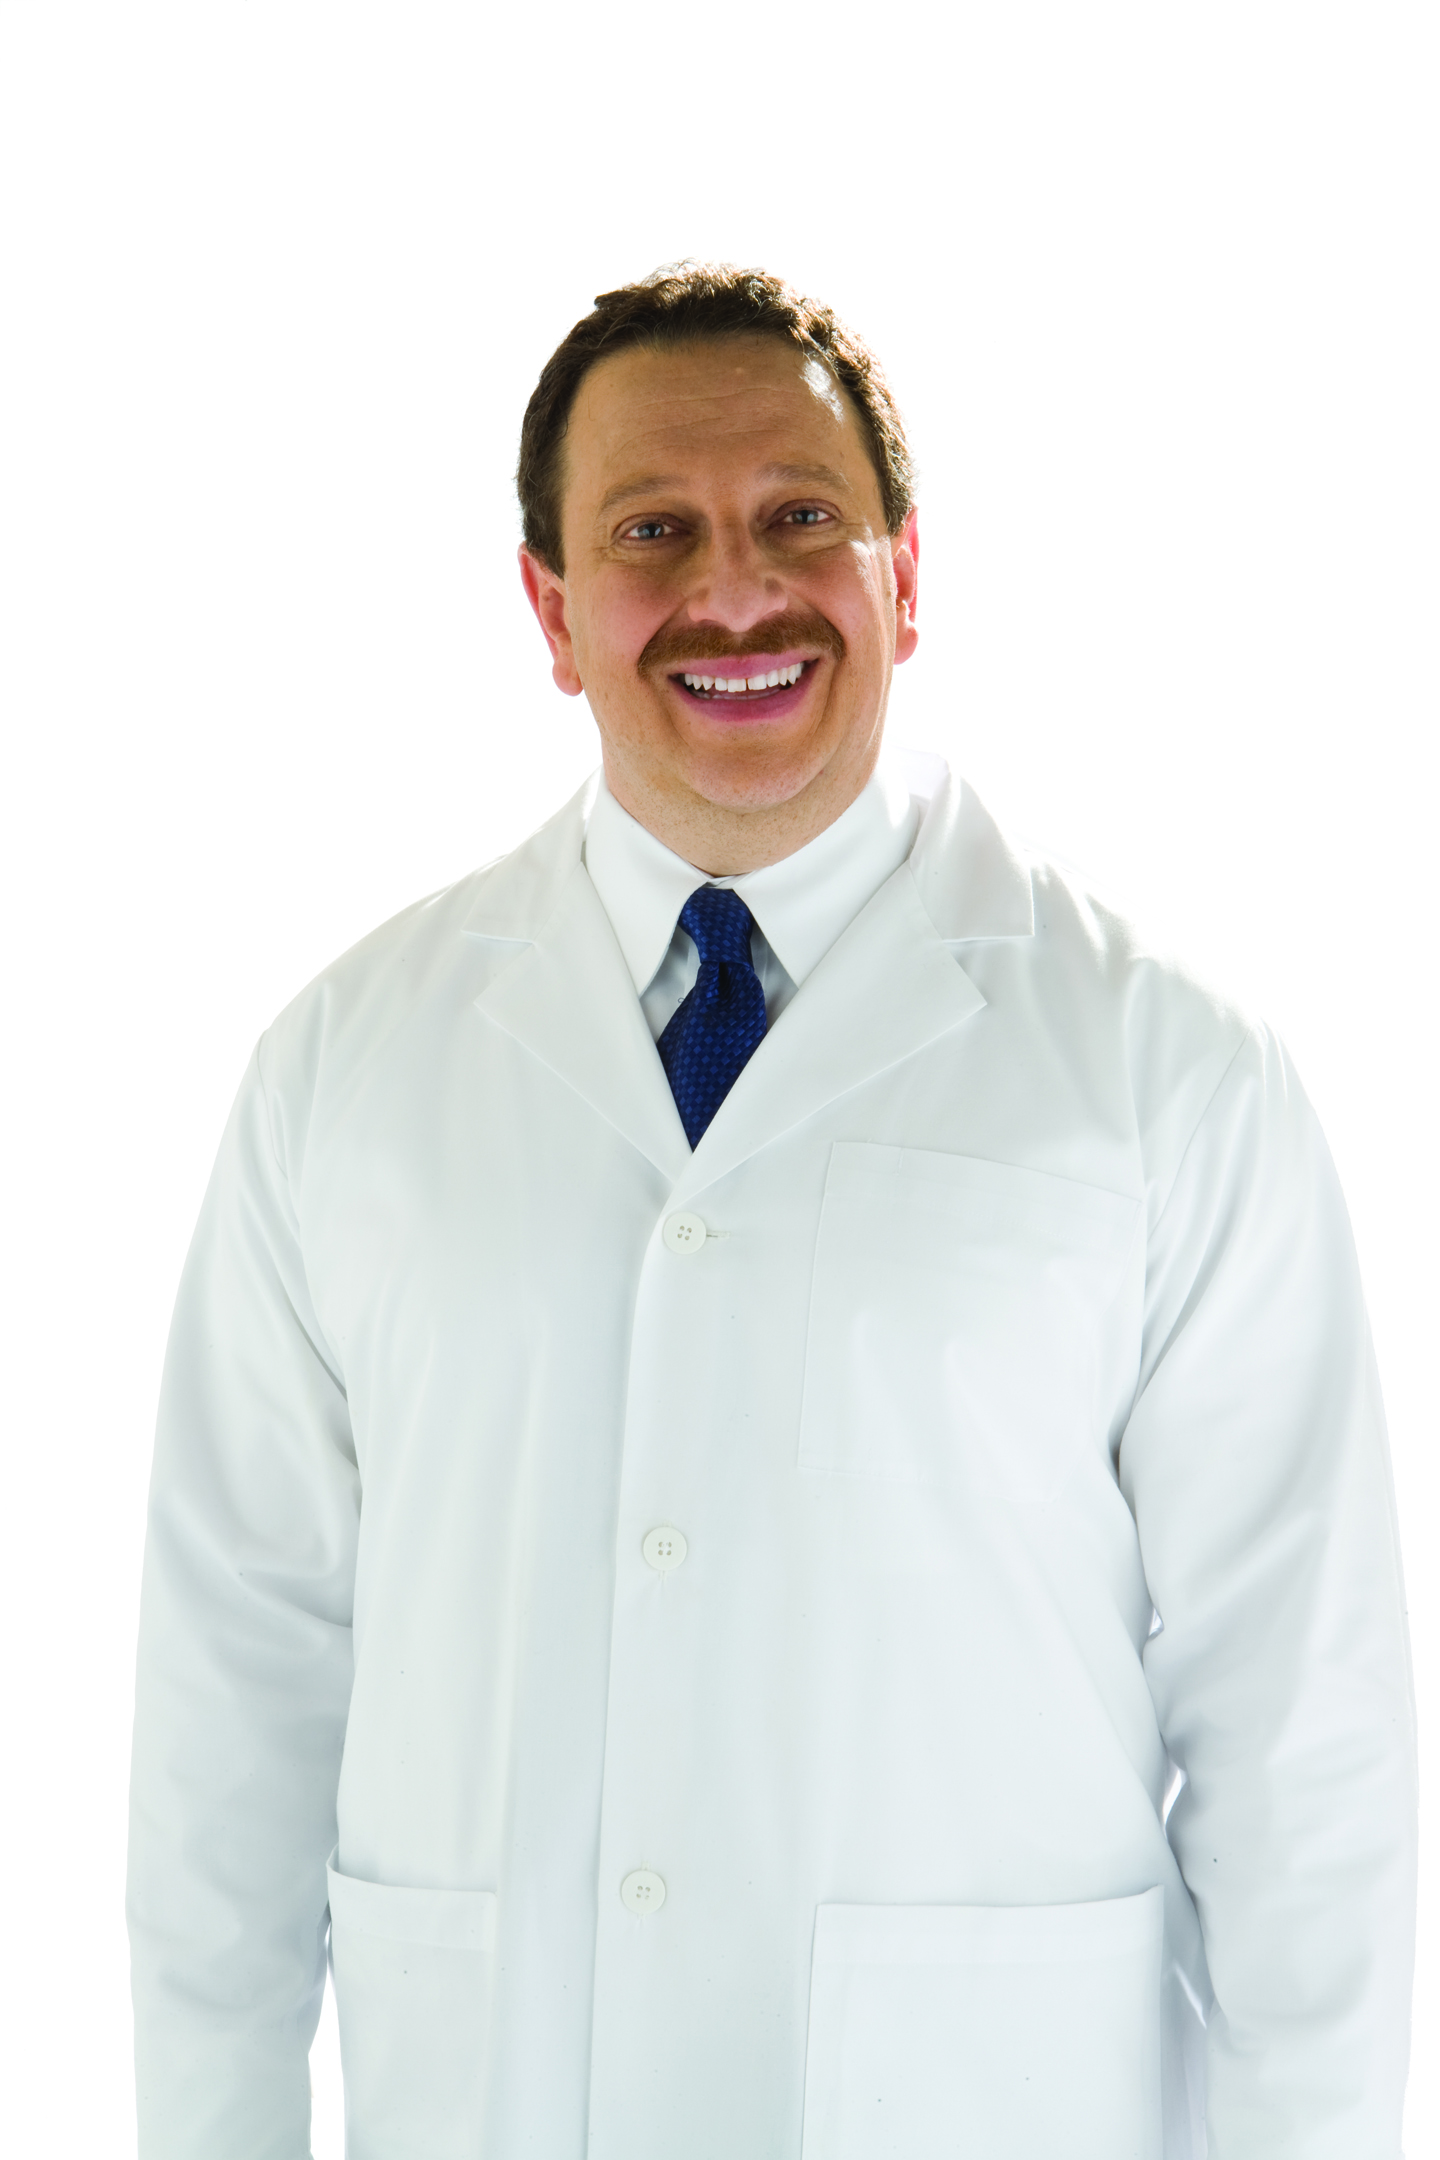 LASIK and Cataract Surgeon Dr. Jeffrey Robin